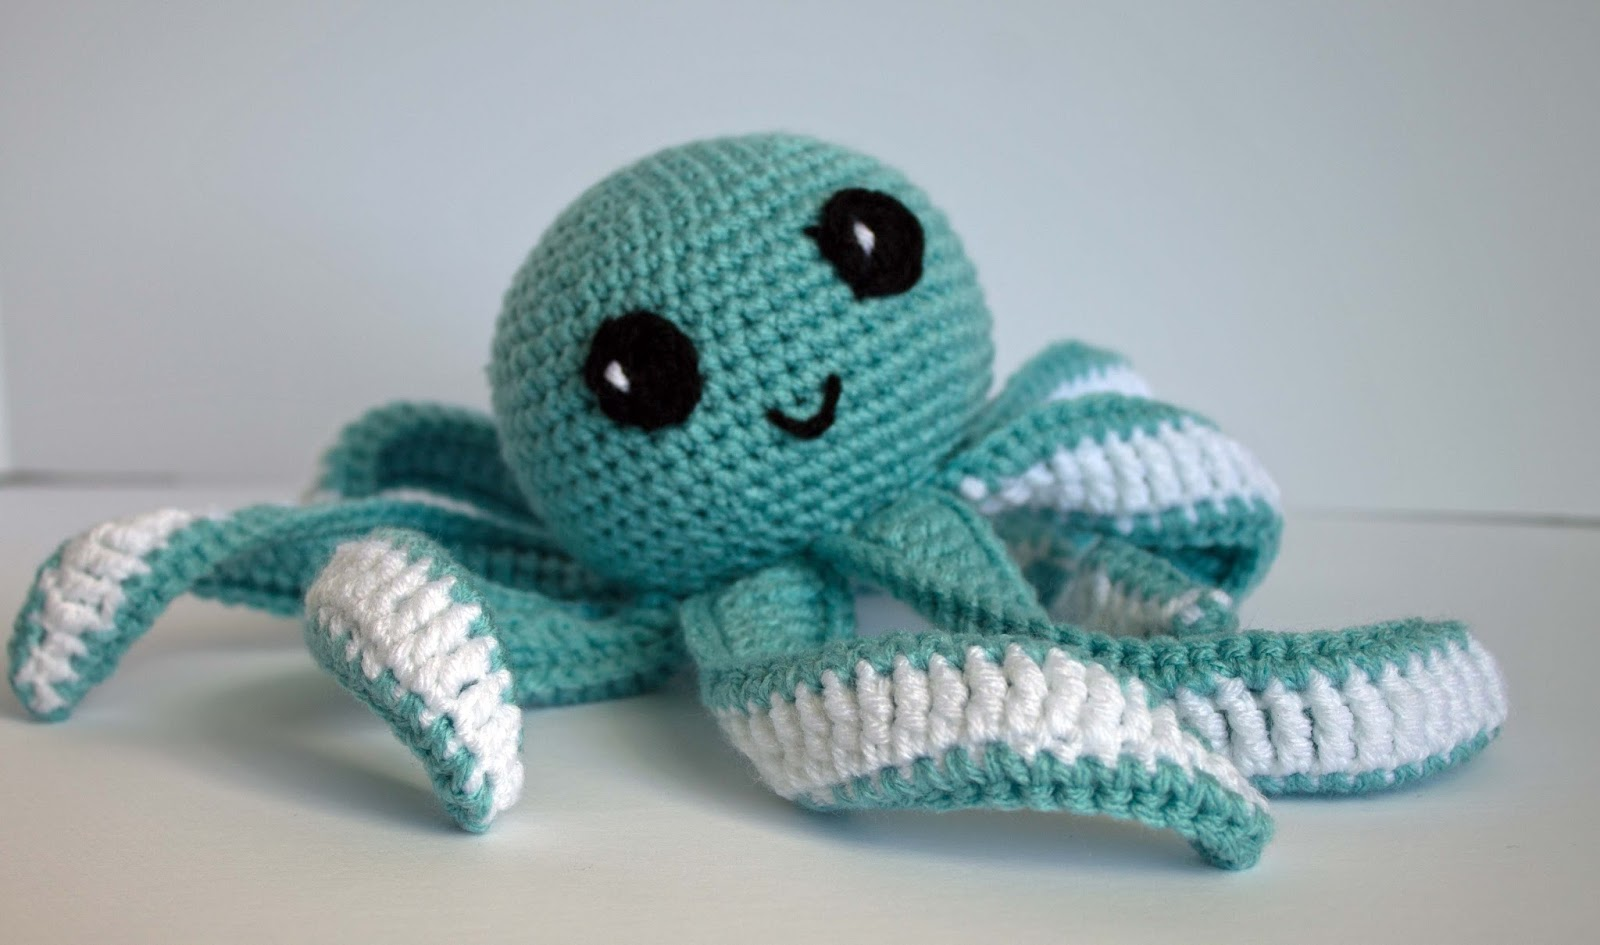 Knitting Pattern Octopus Toy : Amigurumi Octopus Baby Toy Free Pattern Part 2 - The ...